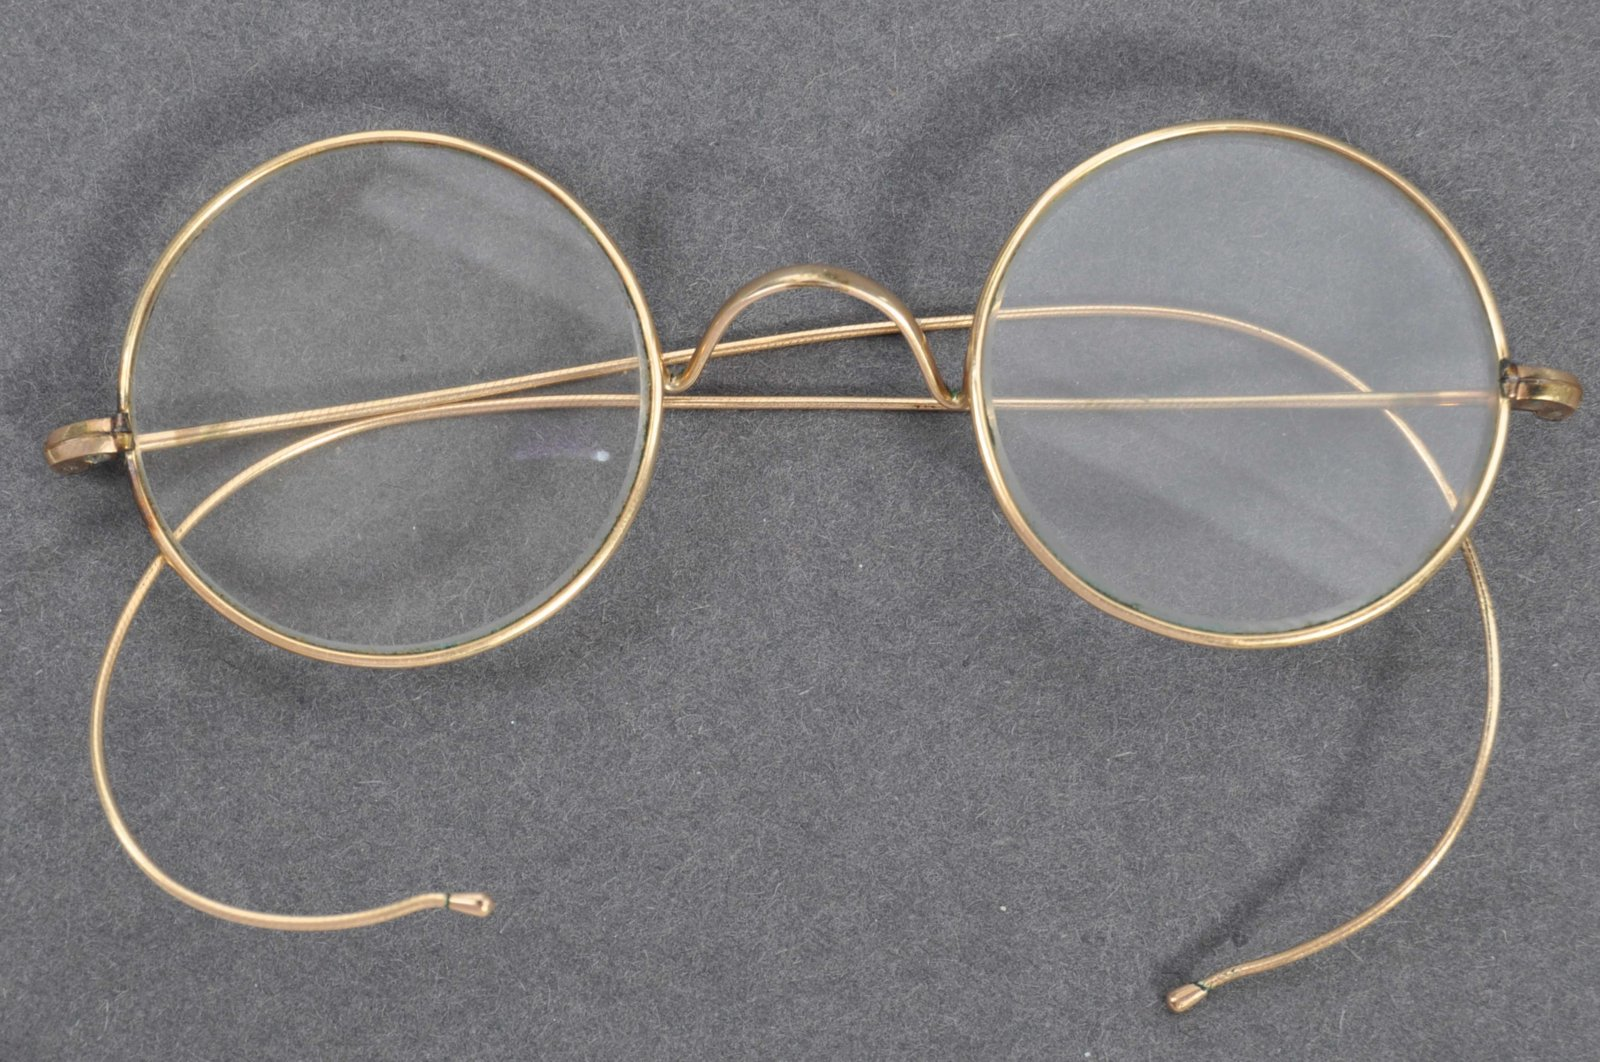 A handout picture released by East Bristol Auctions shows a pair of glasses that once belonged to Indian independence icon Mohandas K. Gandhi photographed at the auction house in Bristol on Aug. 20, 2020. (AFP Photo)